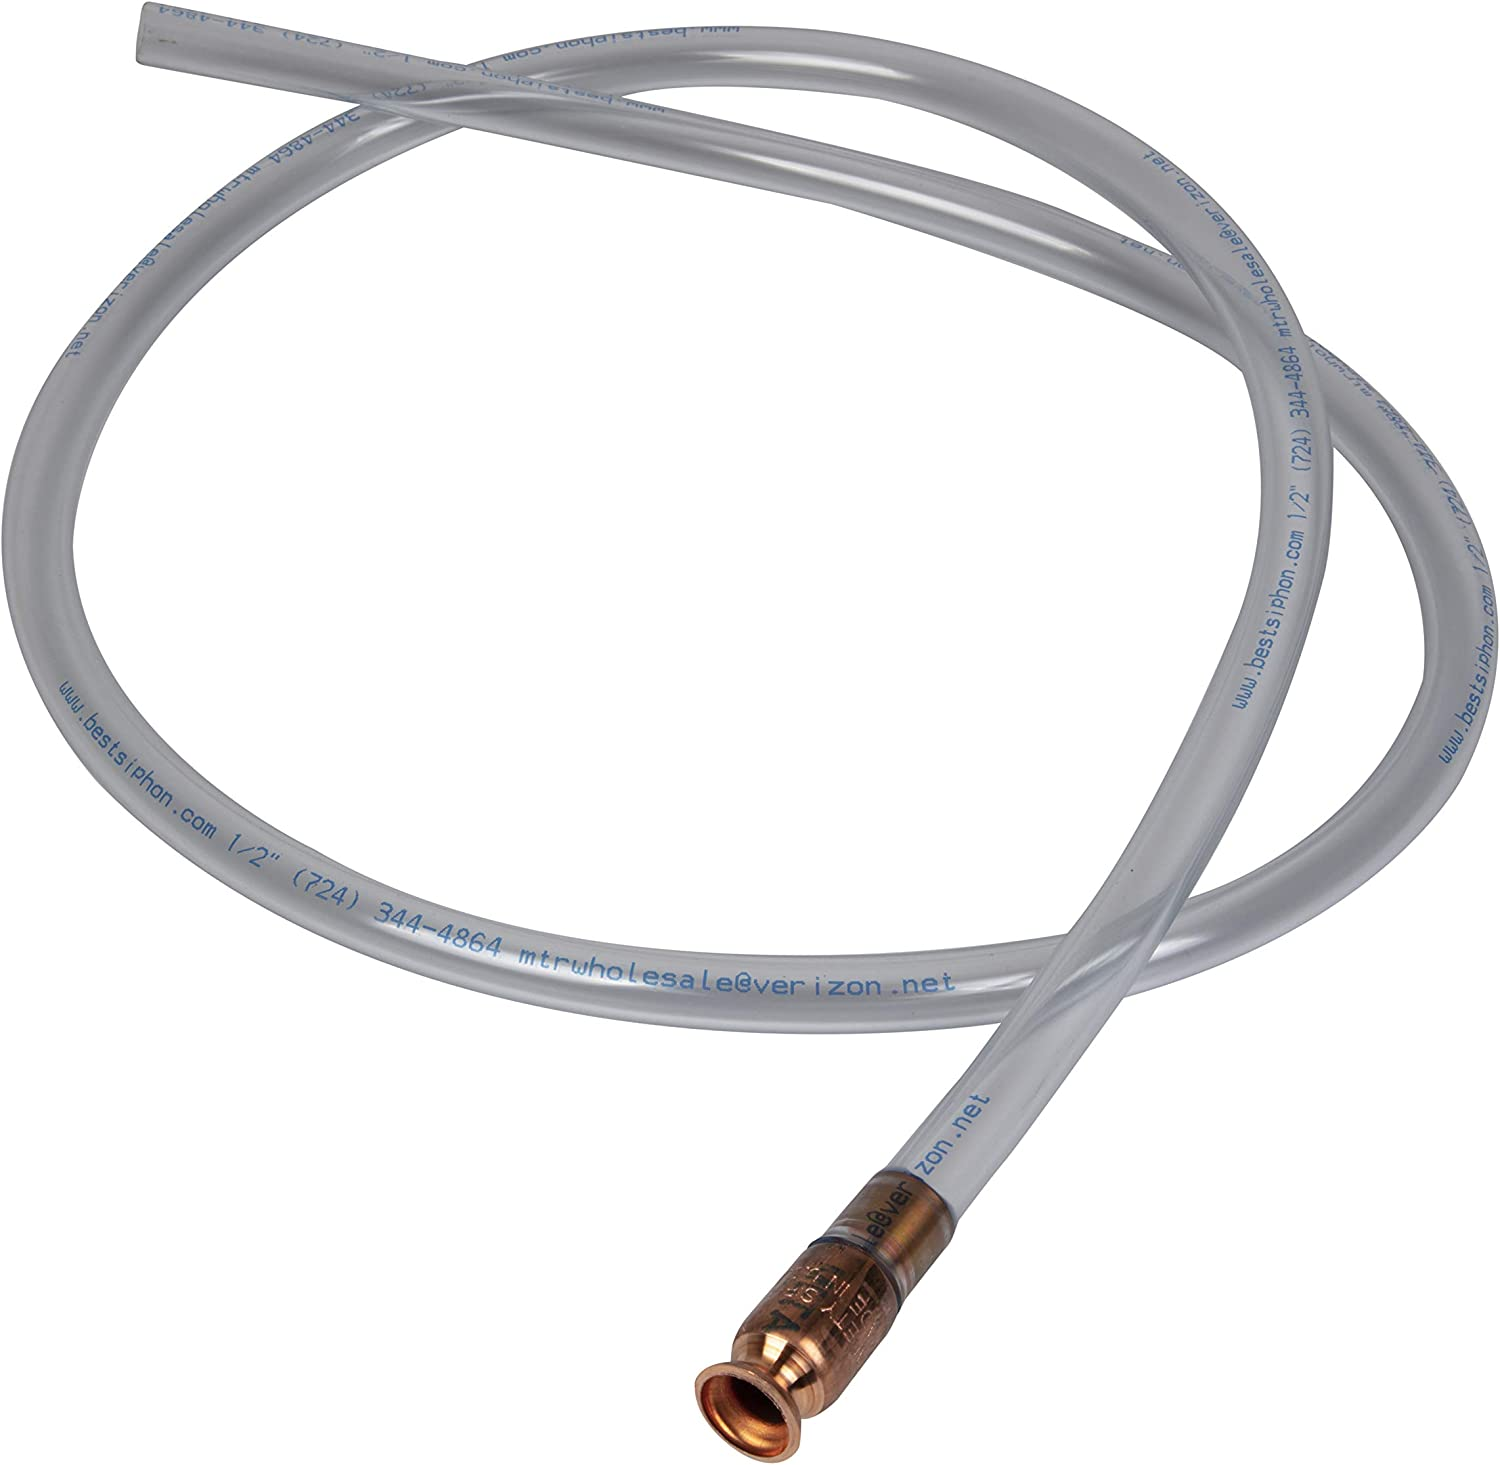 The Original Safety Siphon Safety Siphon - Safe Multi-Purpose Self Priming Fuel Pump 10 Foot Hose, 1/2 Valve - Pack of 2